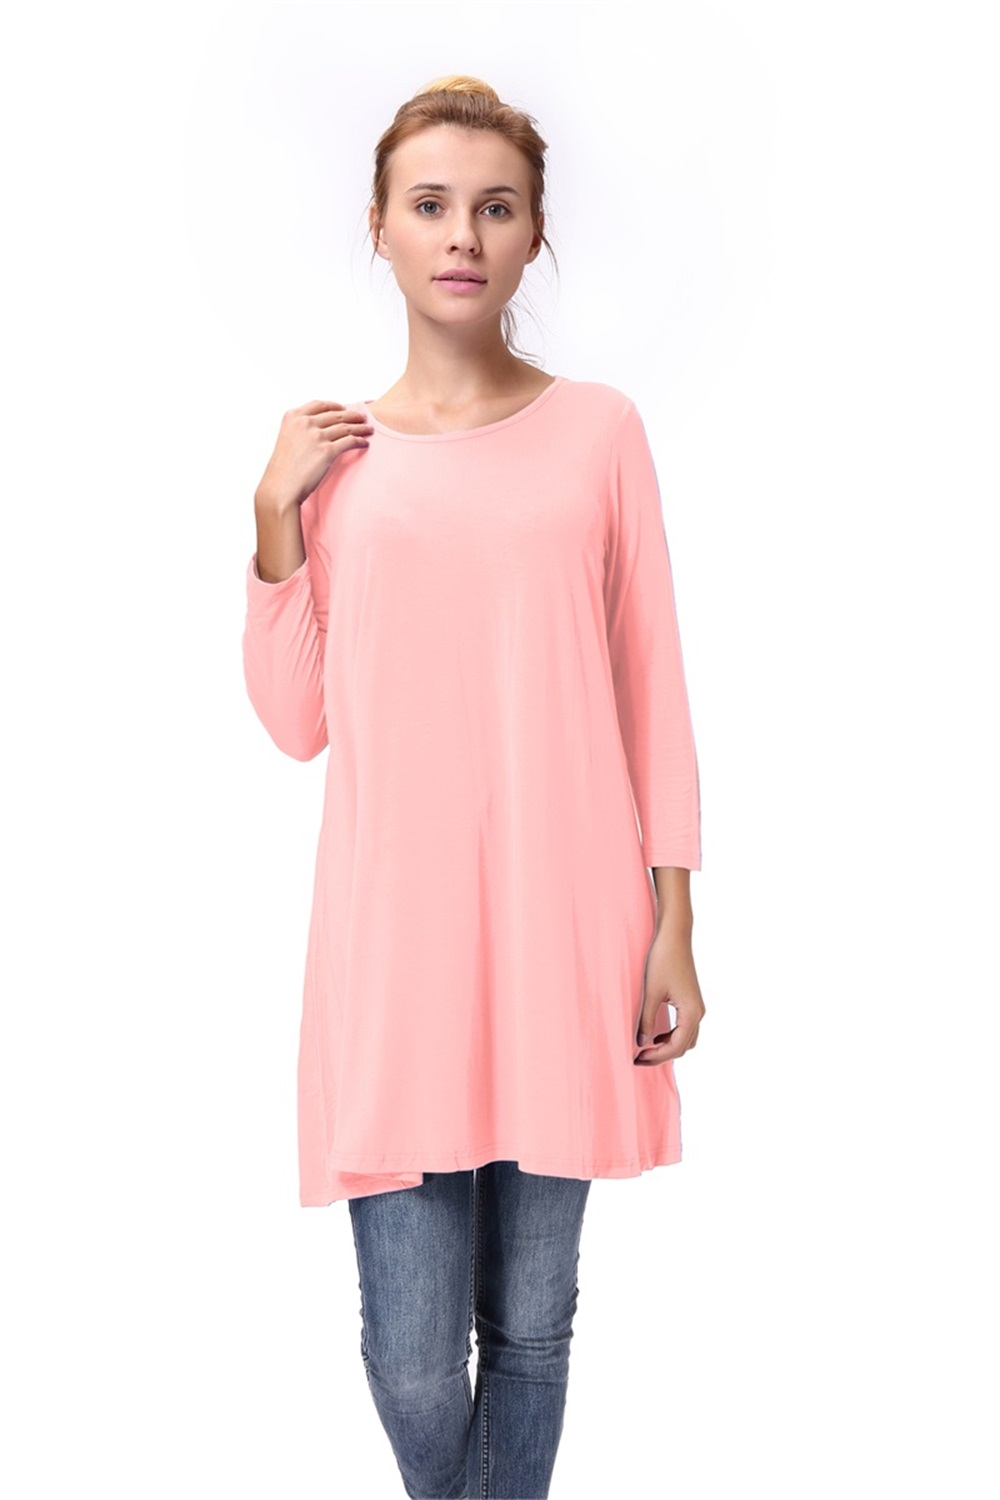 Women-039-s-Long-Tunic-Top-3-4-Sleeve-Dolman-Boat-Neck-USA-Dress-S-M-L-1X-2X-3X-PLUS thumbnail 38